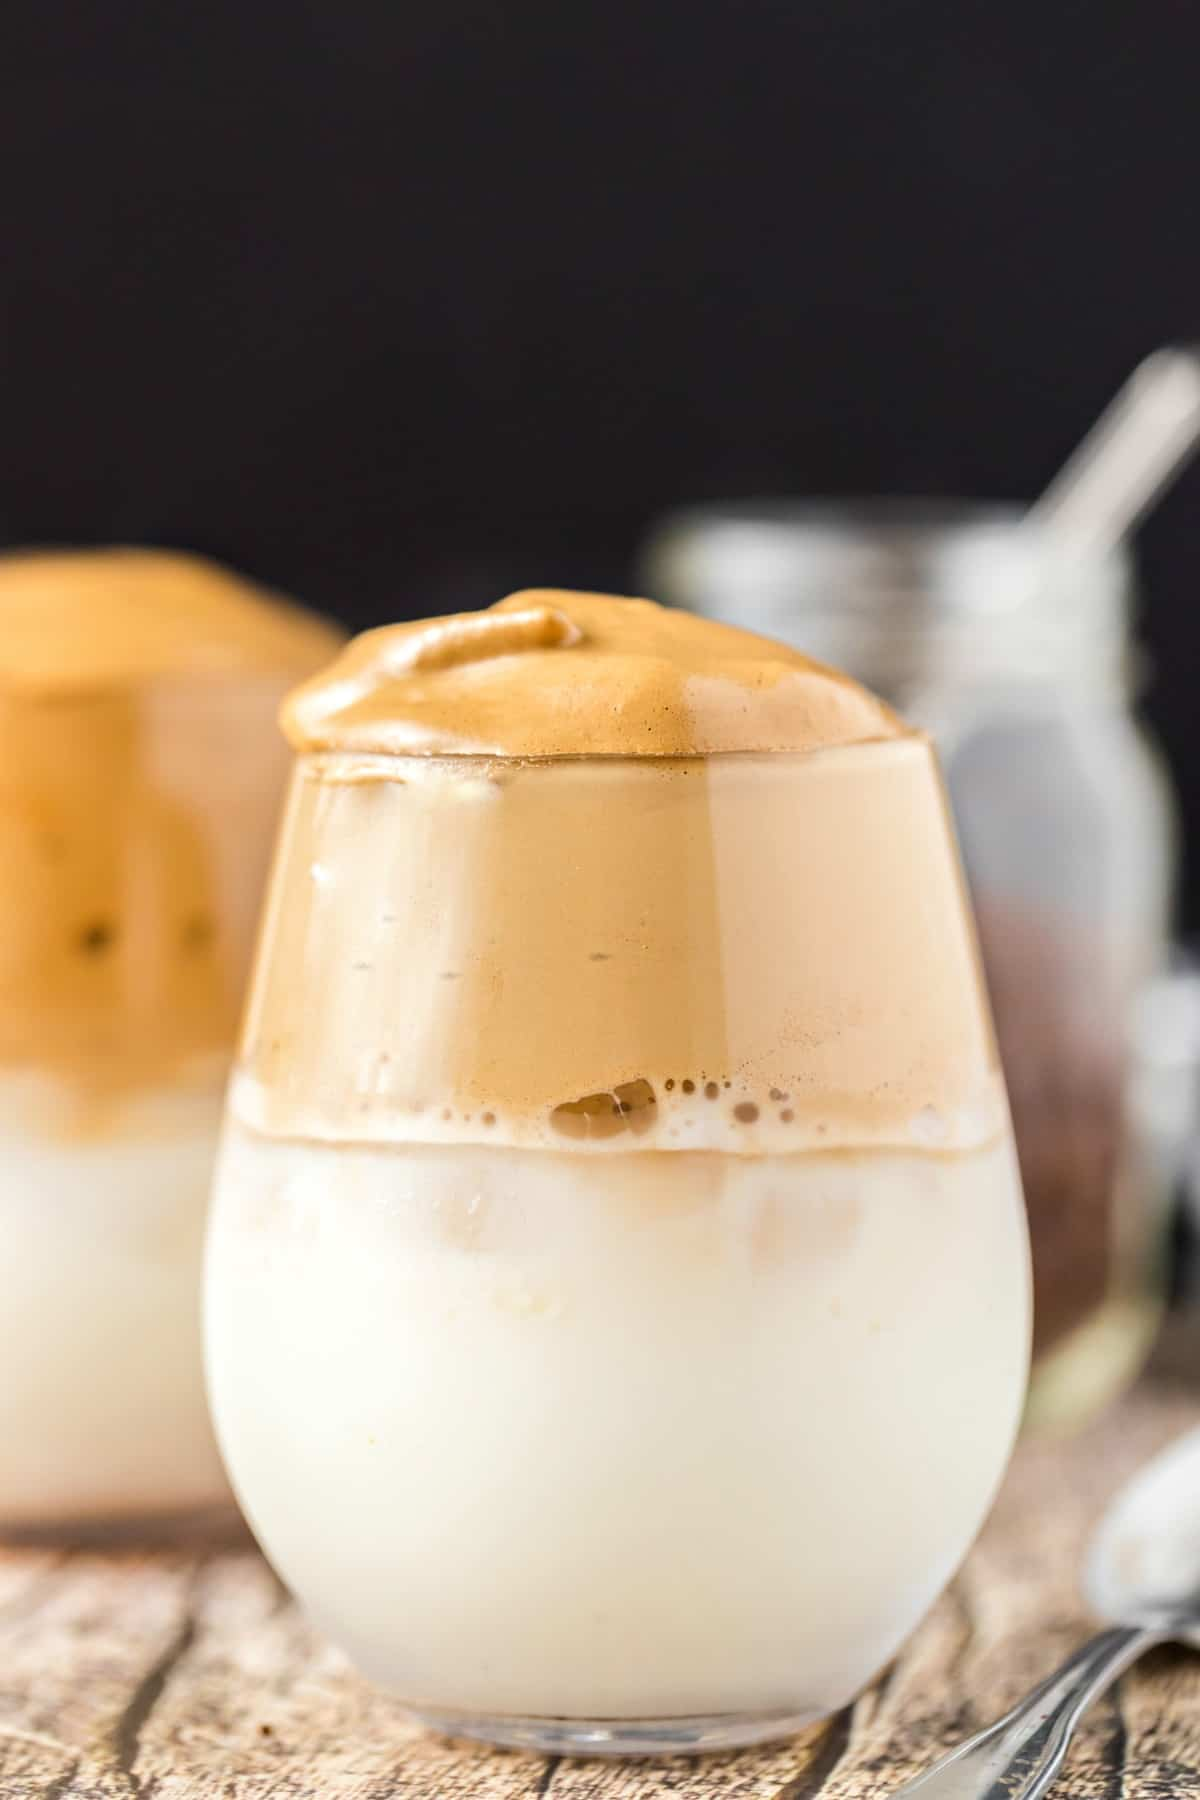 Clear stemless wine glass with whipped coffee over milk.